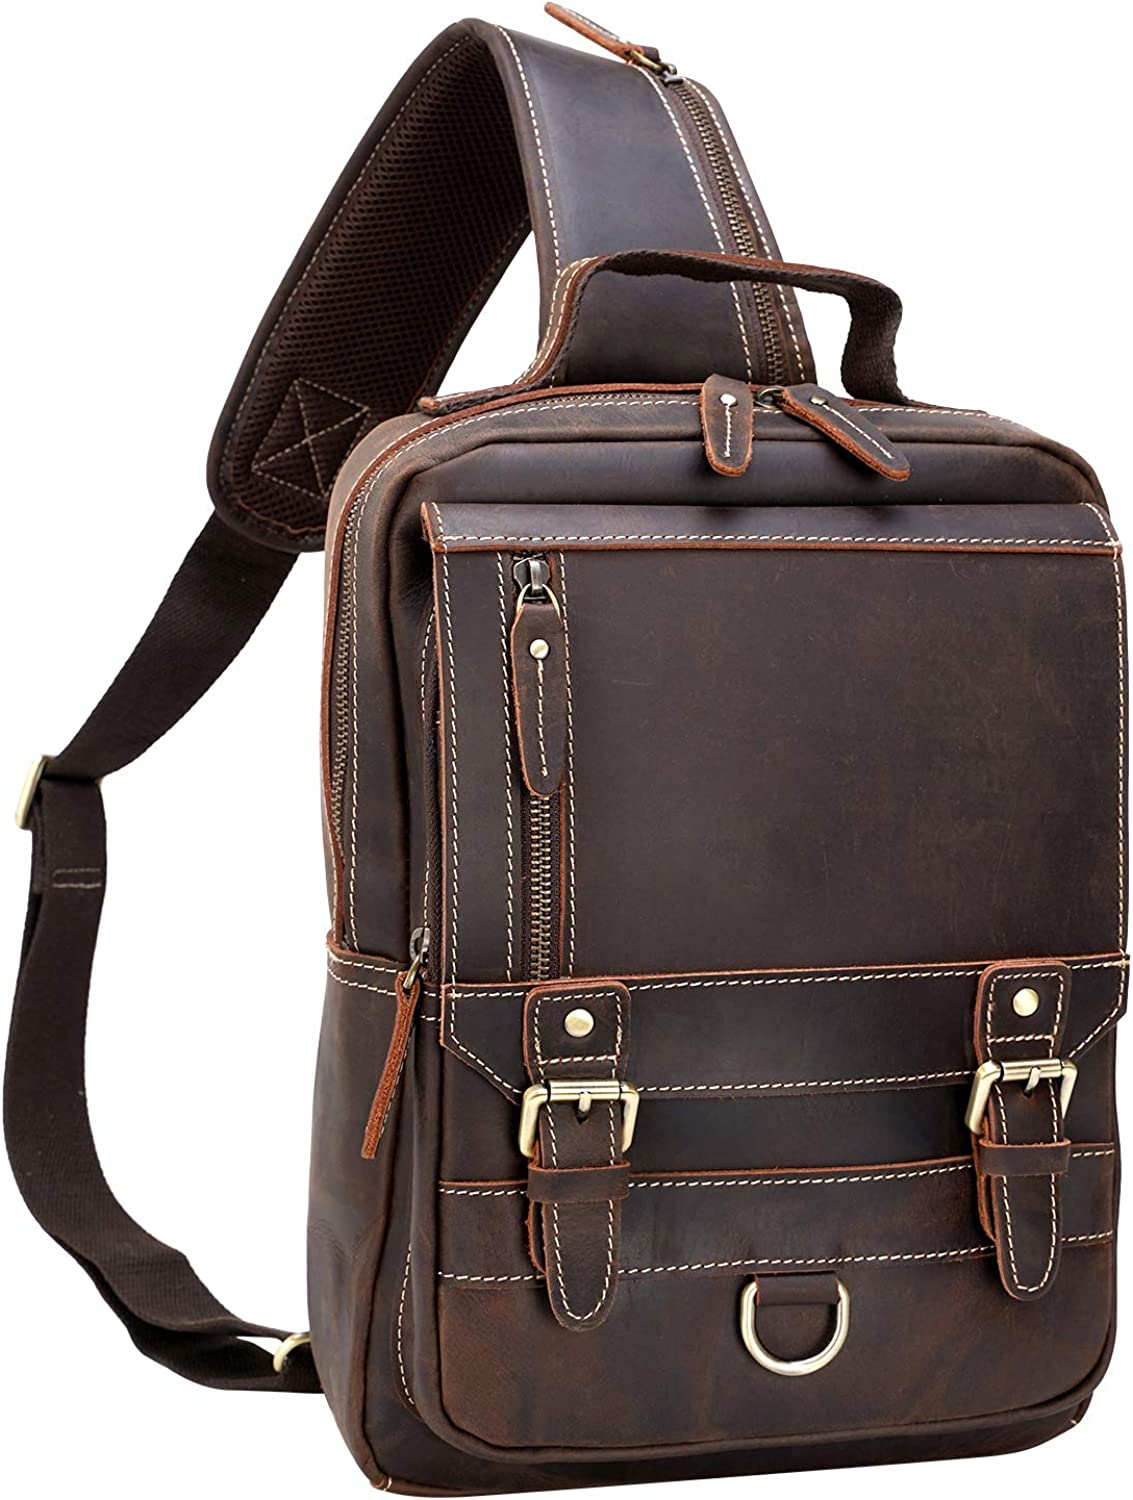 Texbo Thick Full Grain Leather Sling Bag Shoulder Backpack Travel Rucksack Casual Crossbody Bag